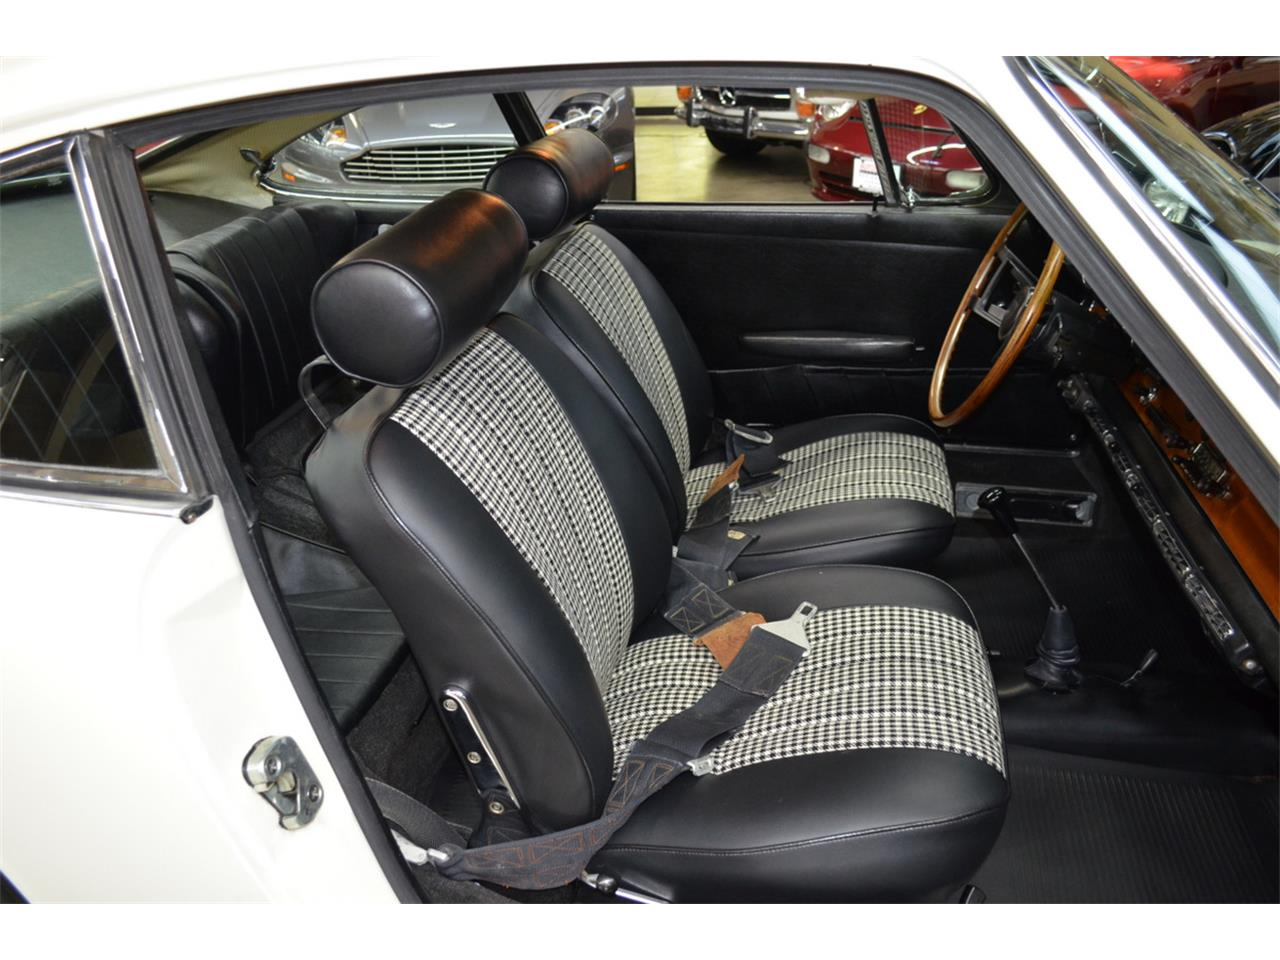 Large Picture of Classic 1965 Porsche 911 located in Huntington Station New York Auction Vehicle - QQUH